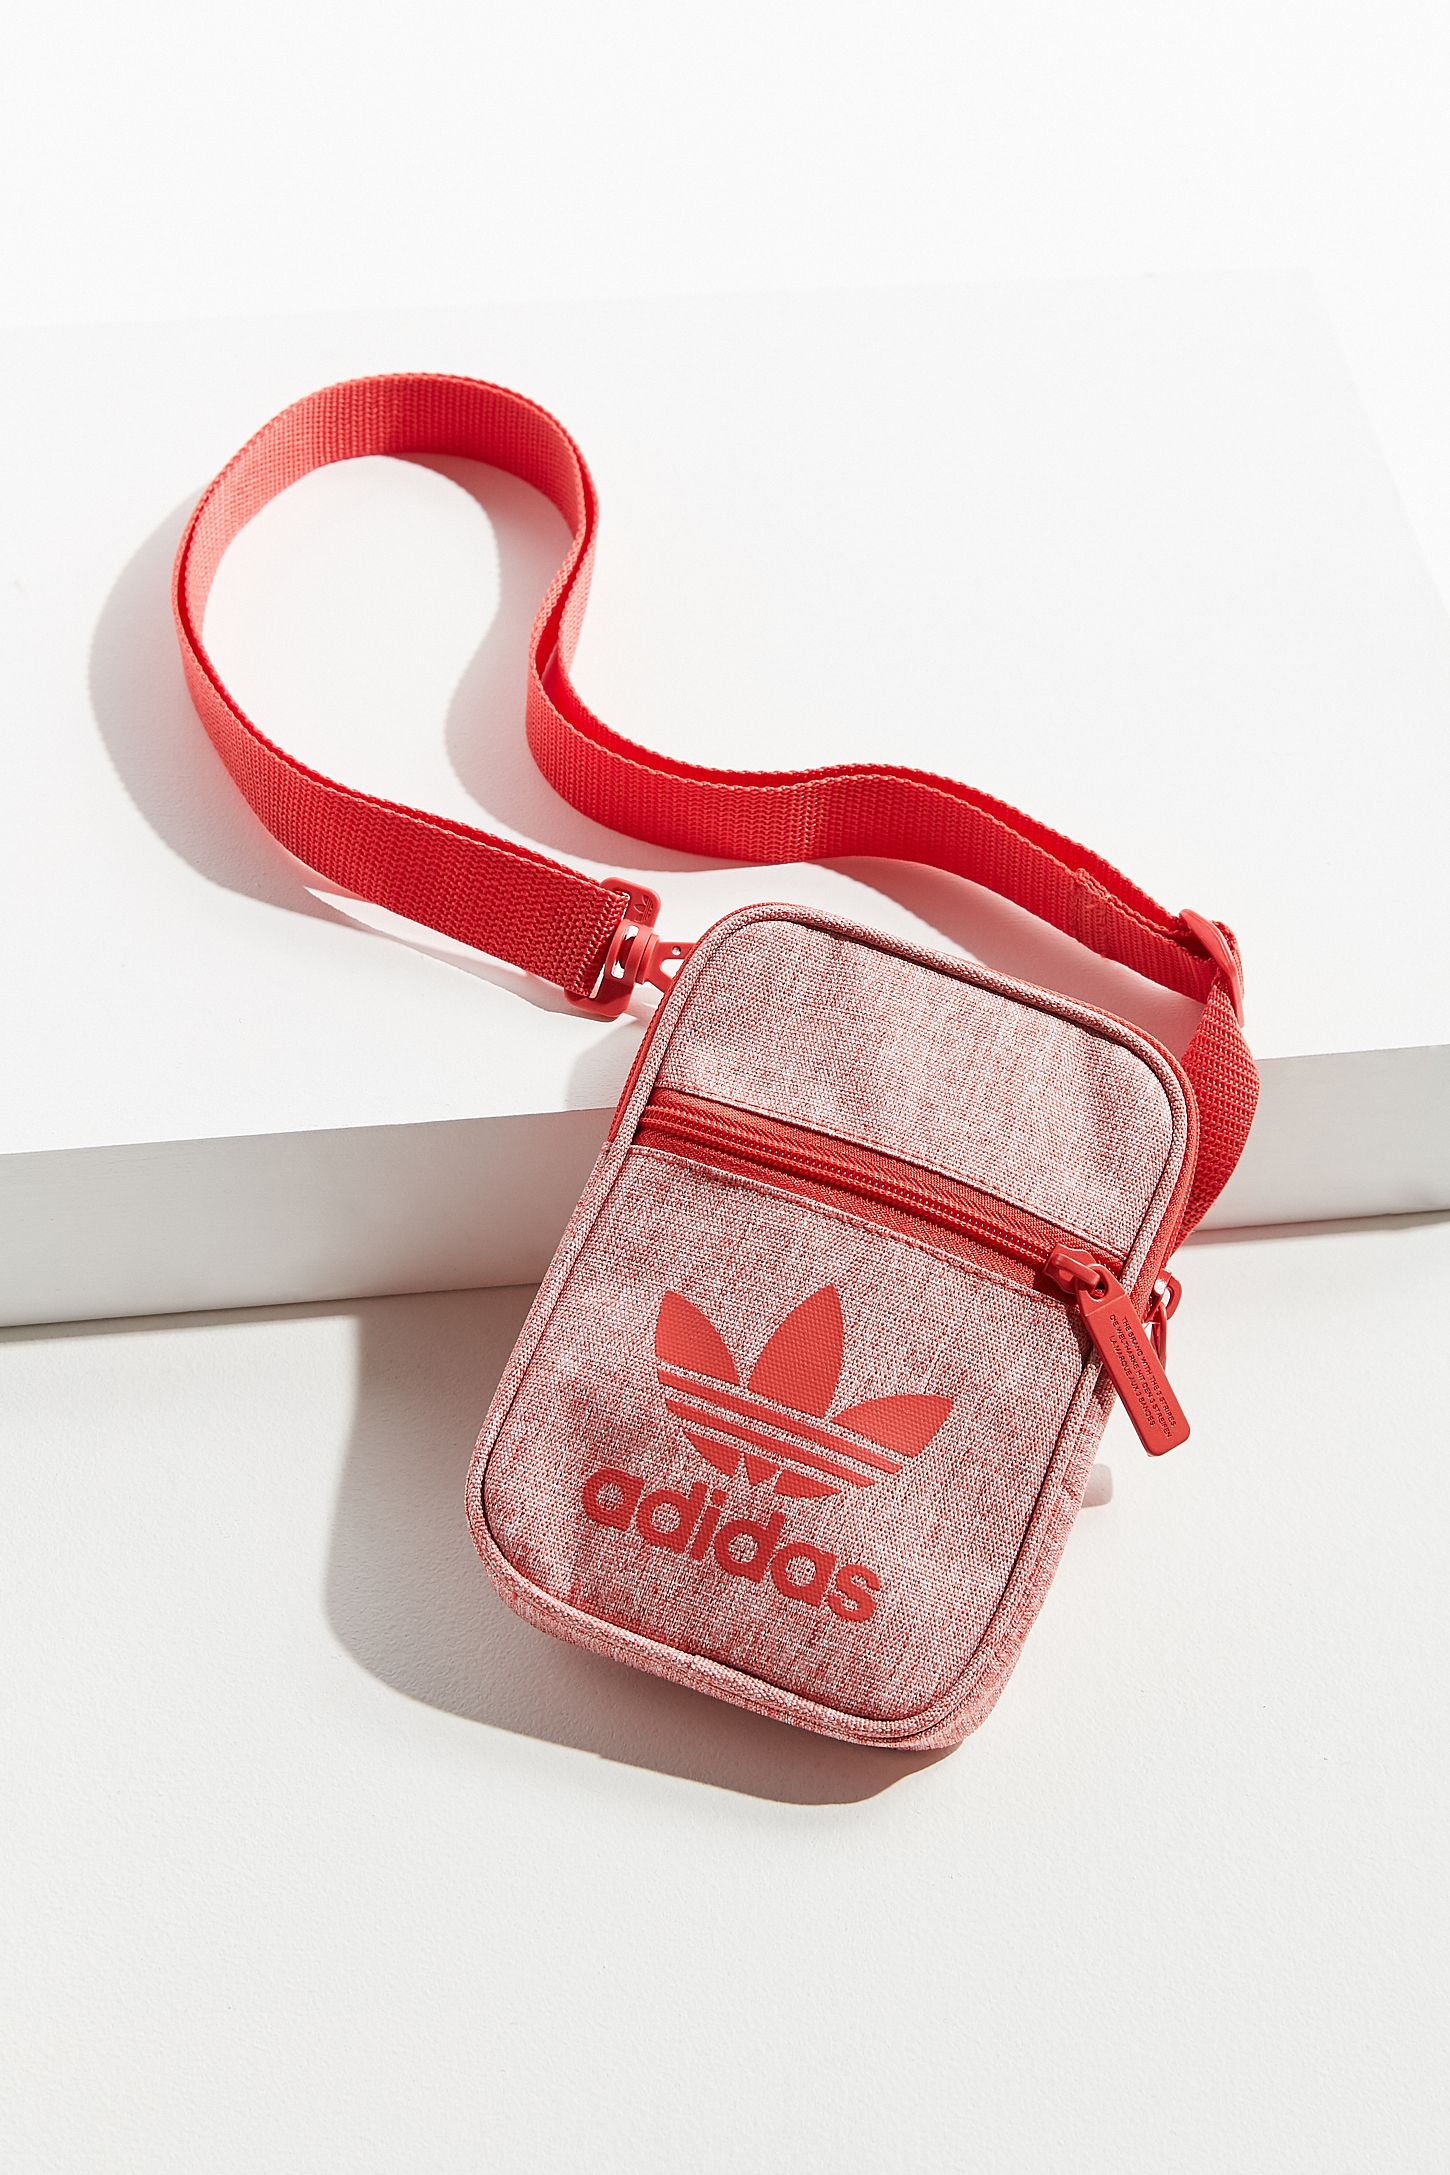 f5c60989832 adidas Originals Festival Crossbody Bag   Urban Outfitters